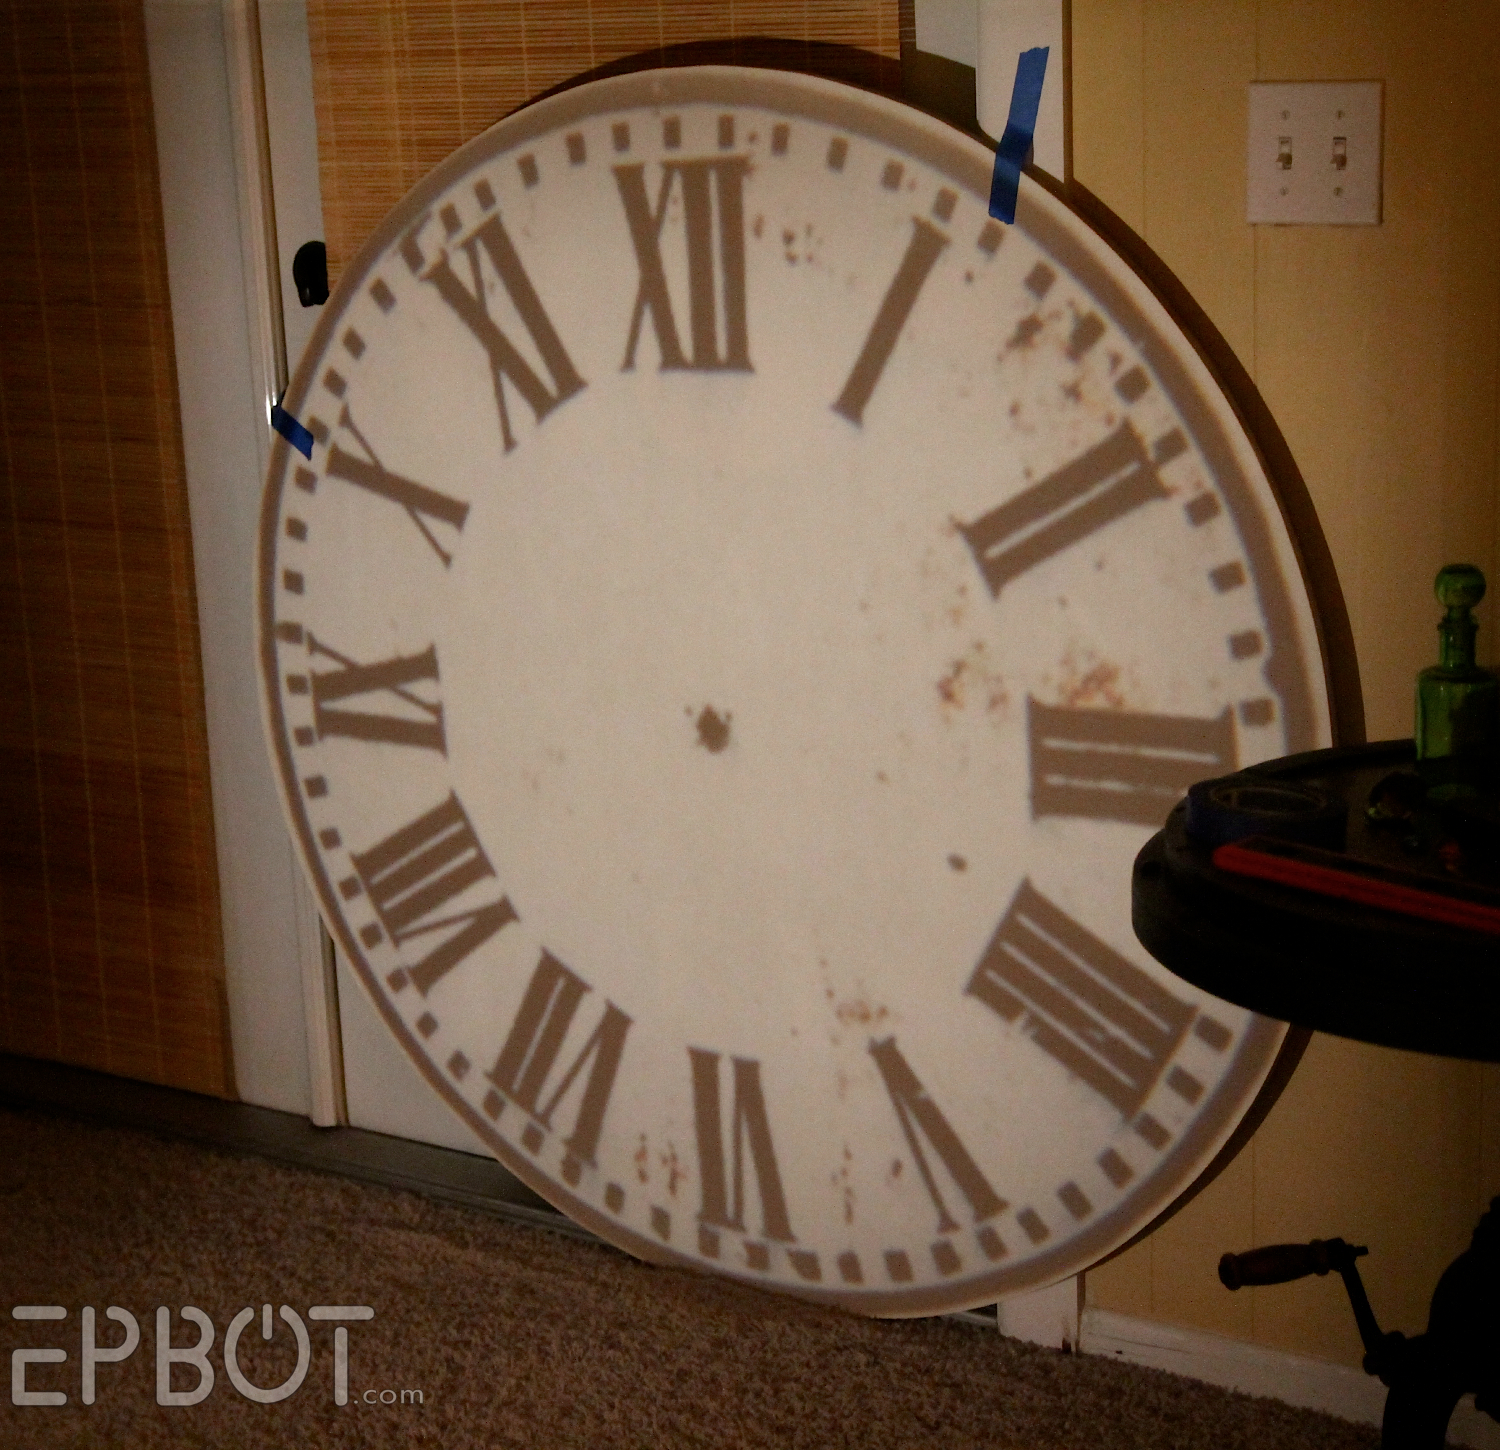 Epbot diy giant tower wall clock getting the projection perfectly aligned and centered is tricky ours ended up being just slightly off so take your time and make sure its as perfect as amipublicfo Images